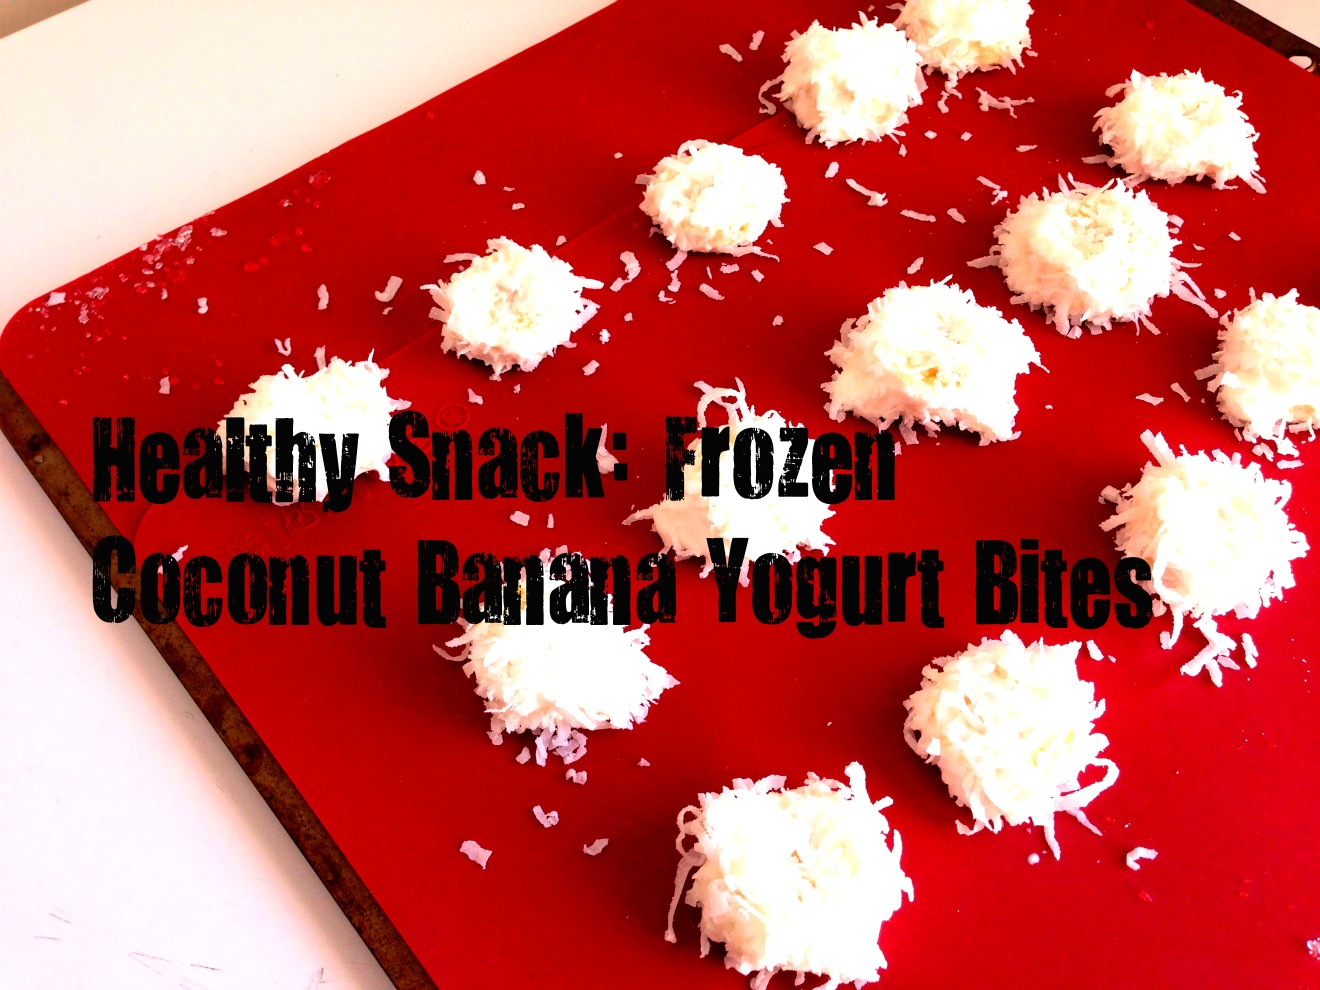 Healthy Snack: Frozen Coconut Banana Yogurt Bites